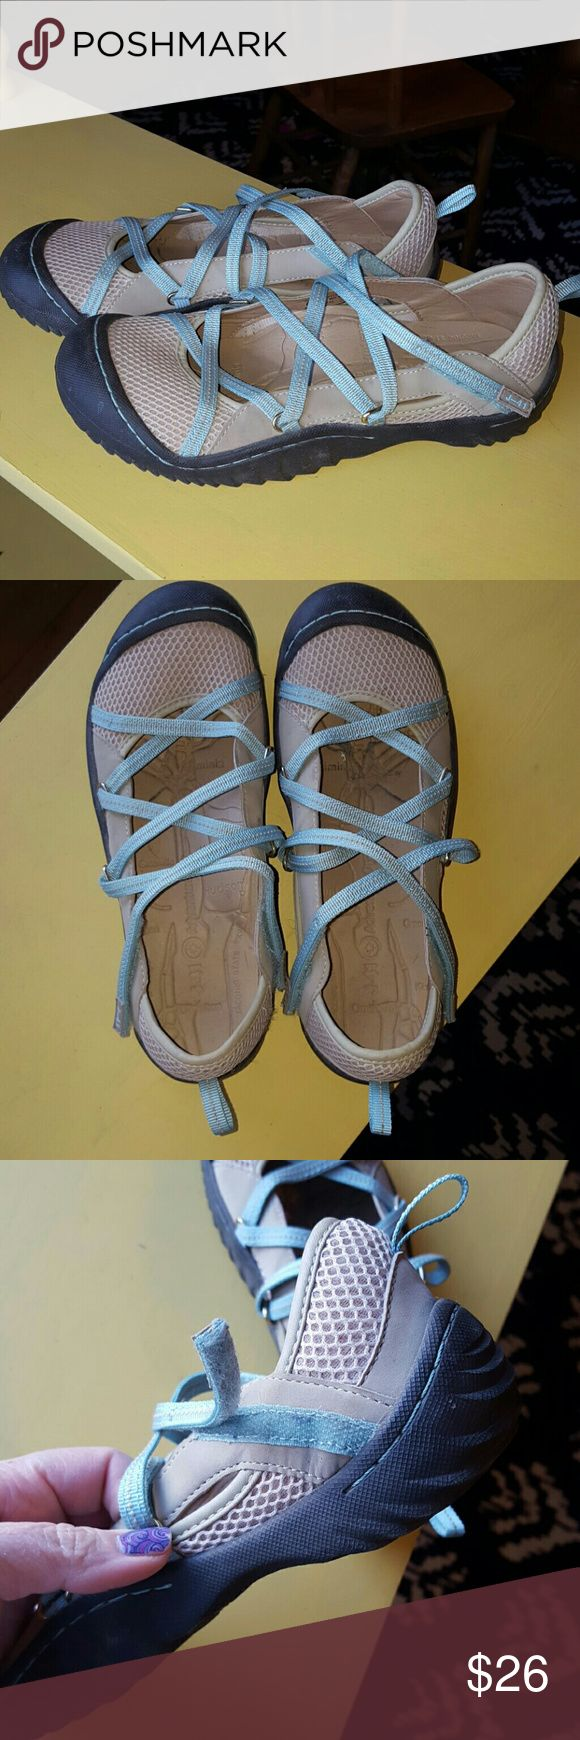 J-41 Genesis flats Super comfy tan and baby blue flats with grippy black soles. Size 7. Jeep Shoes Flats & Loafers